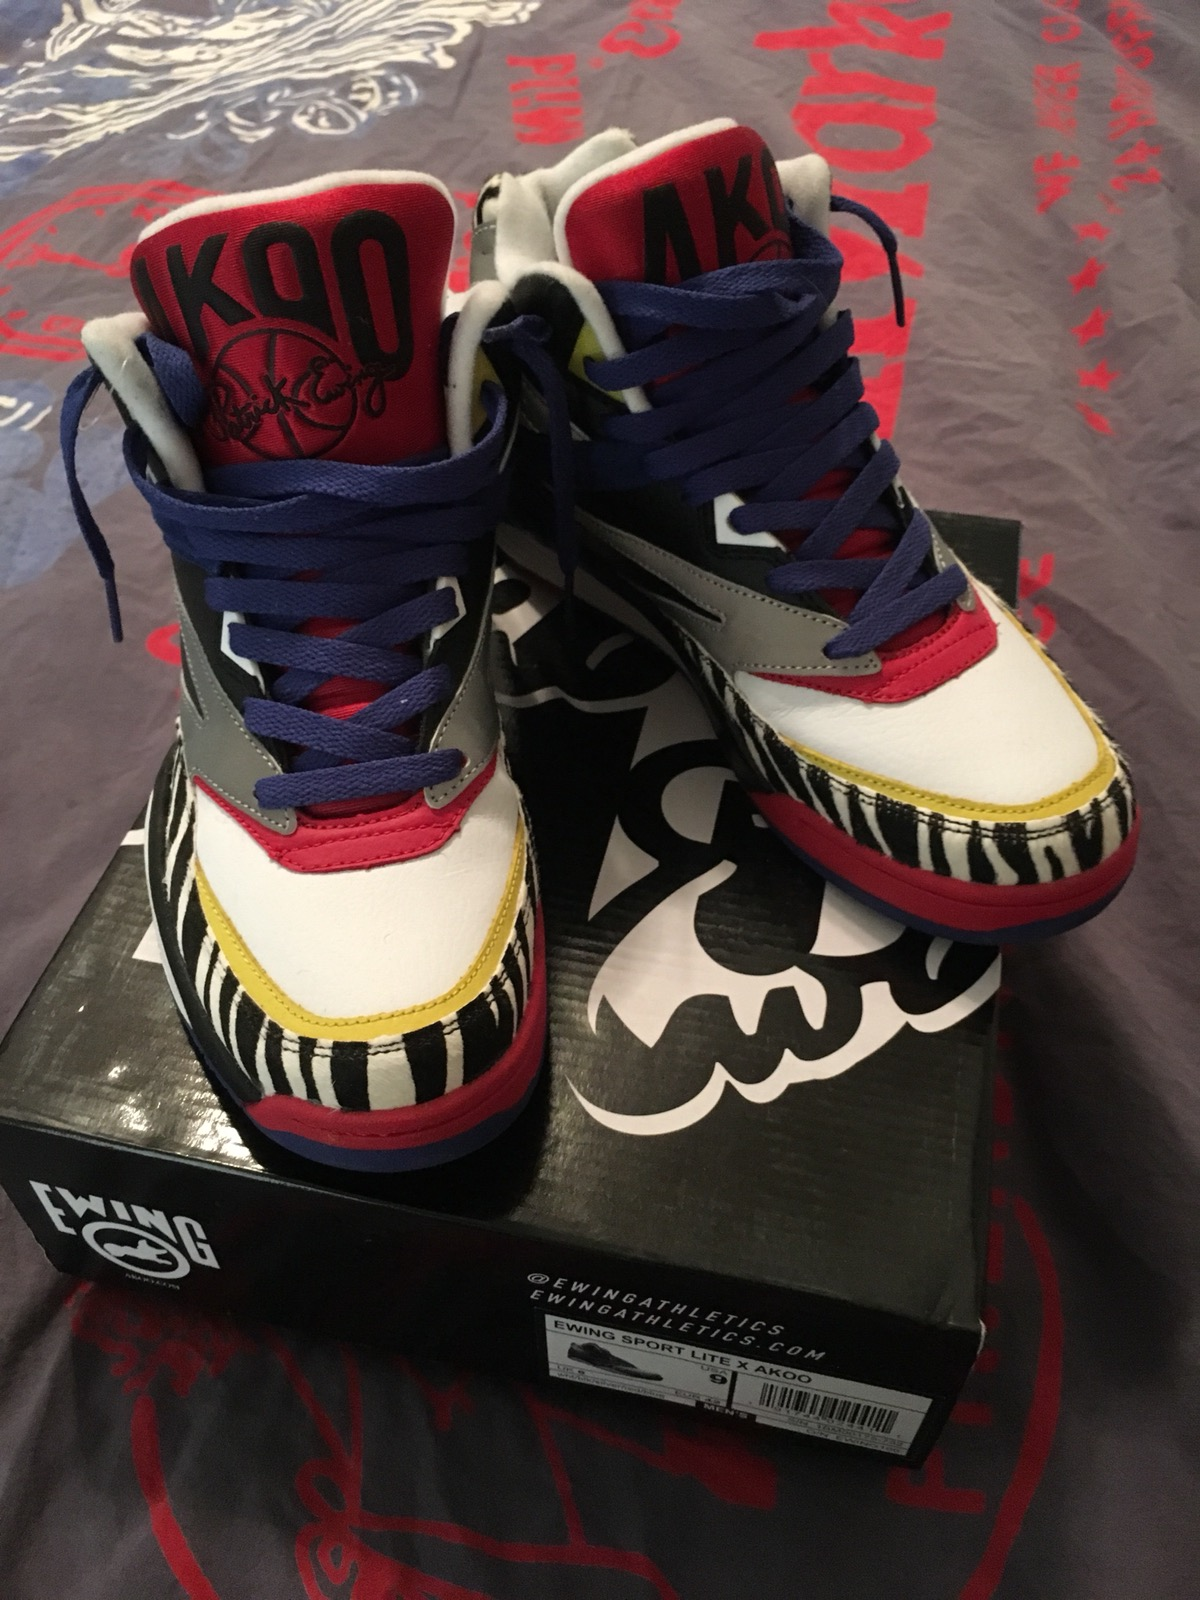 low priced 55f46 eed65 Ewing Athletics Ewing Sport Lite X Akoo Size 9 - Hi-Top Sneakers for Sale -  Grailed